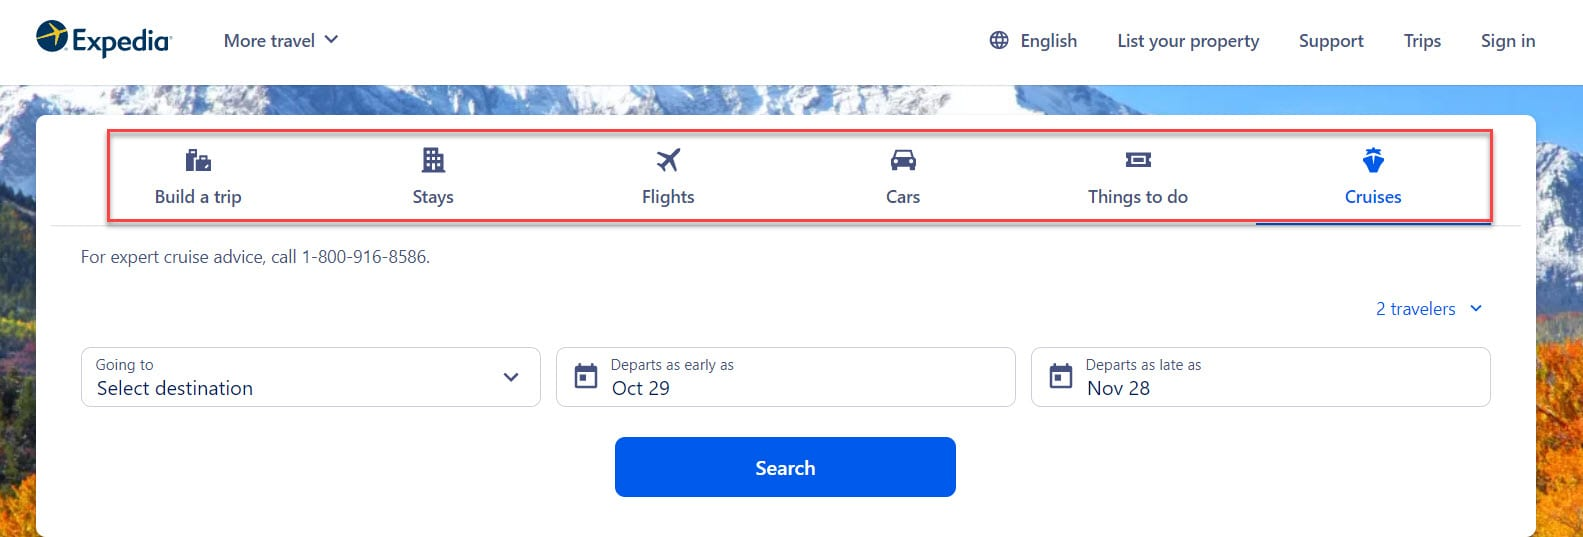 Expedia is using tabs for services